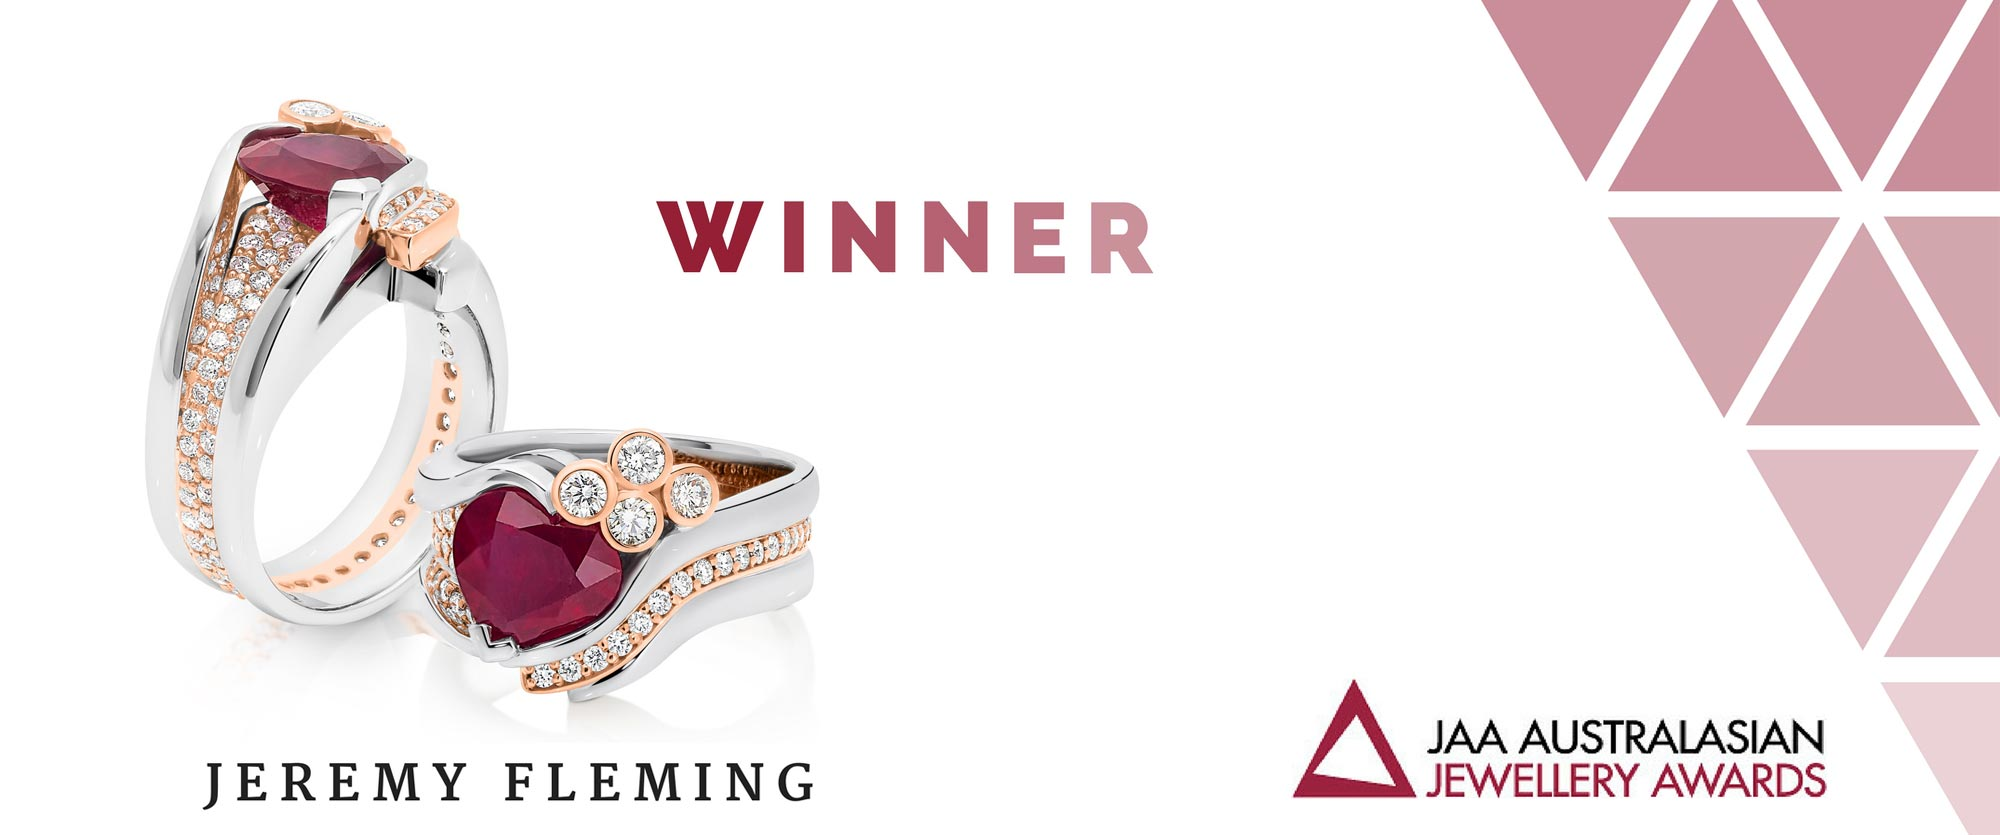 Jeremy Fleming Jewellers is Winner of JAA Australasian Jewellery Awards